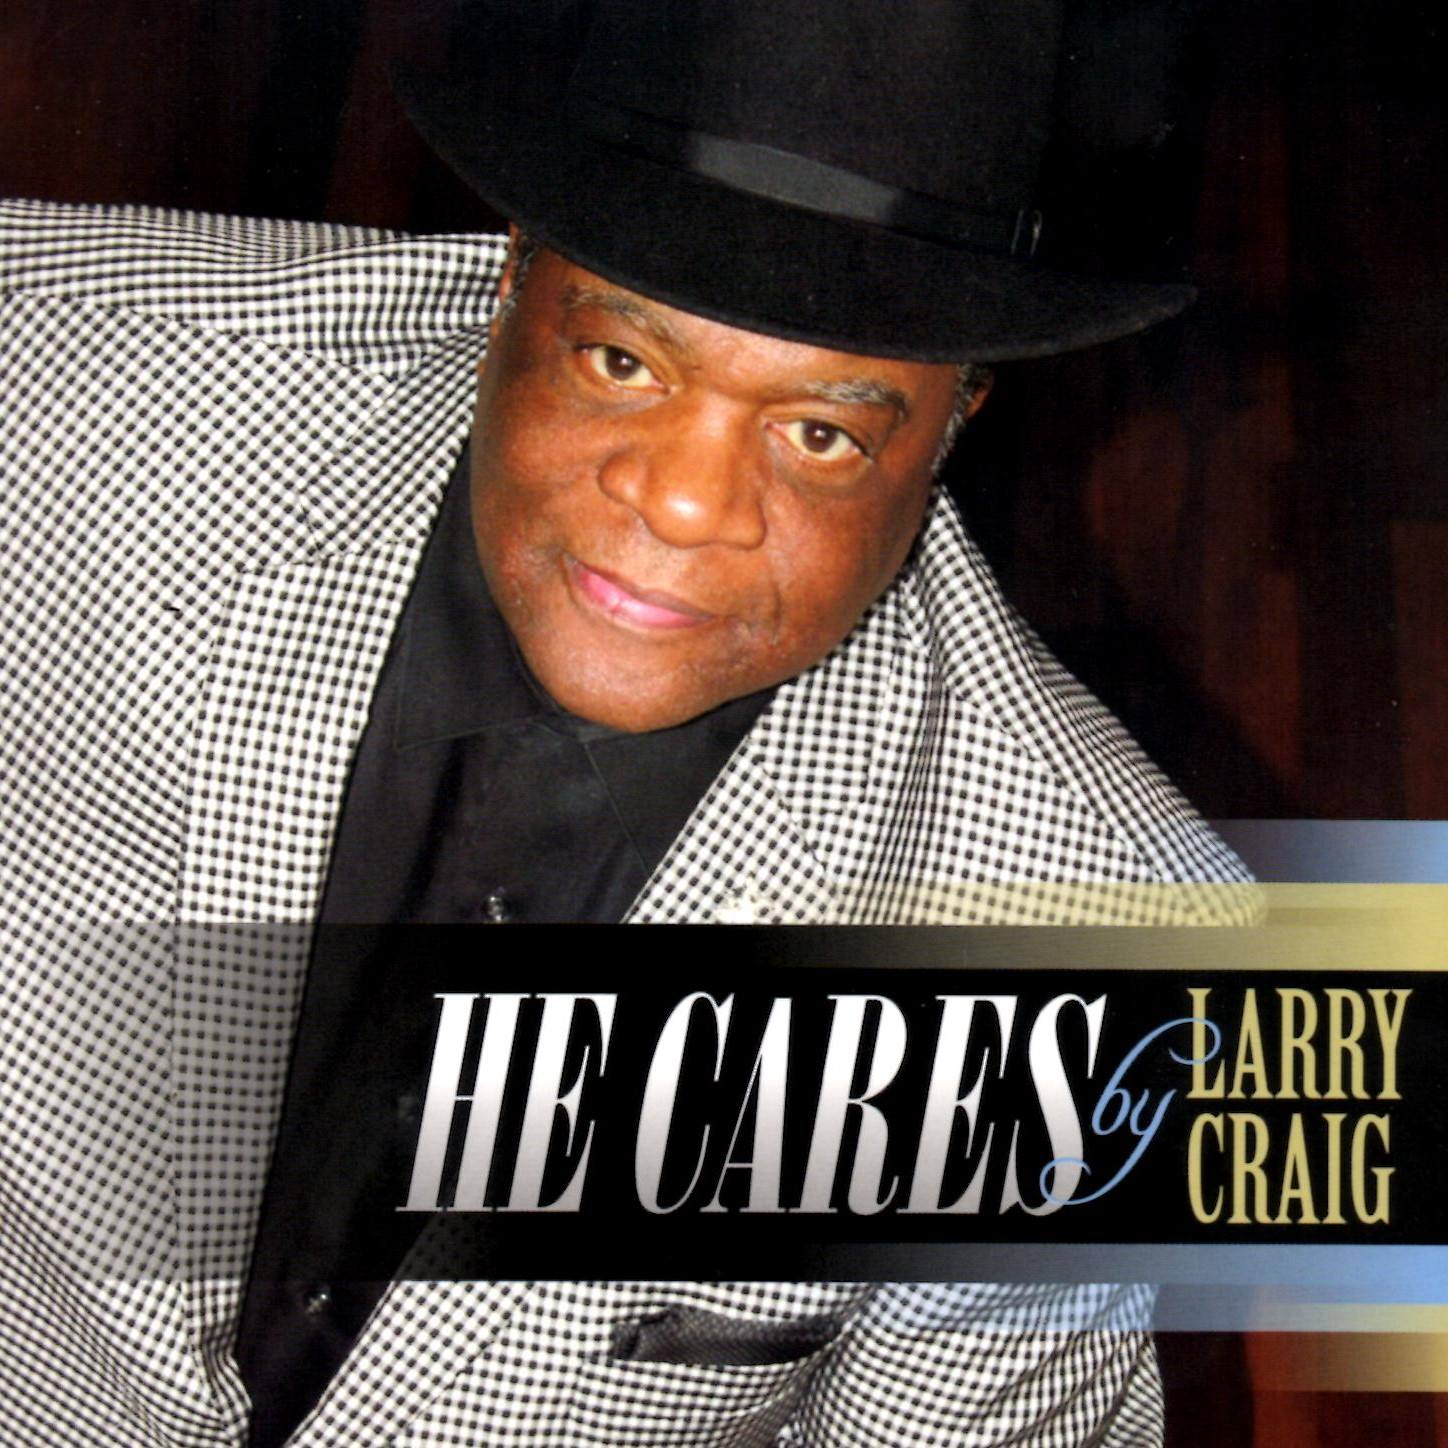 He Cares – Larry Craig